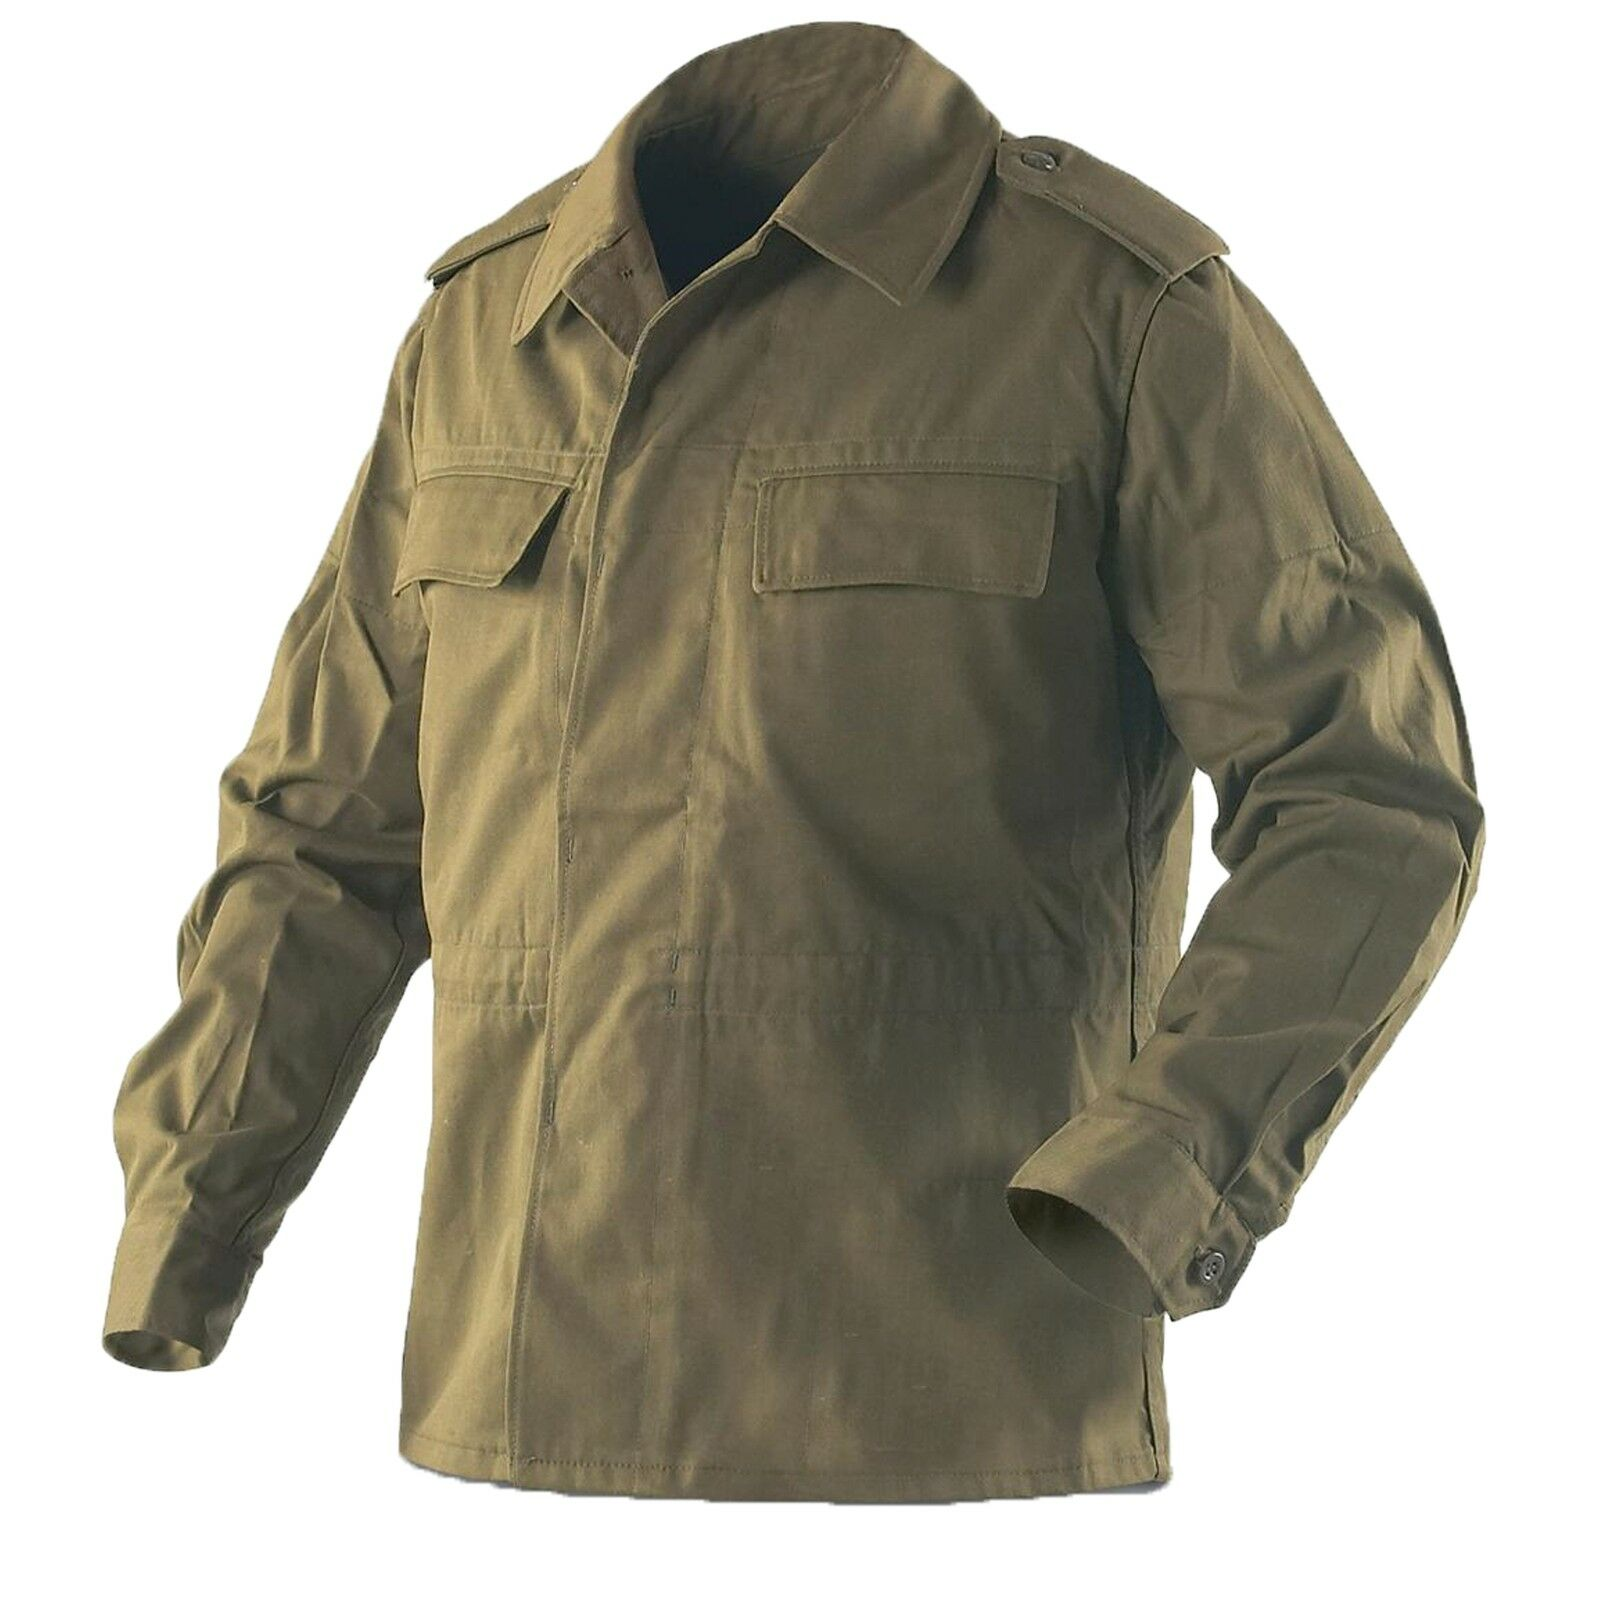 7d766238069 Genuine Czech Army Issue M85 Olive Drab Field Jacket Unused As New  Condition Some Warehouse Storage Can be Present Tough Durable Military  Jacket Issued By ...